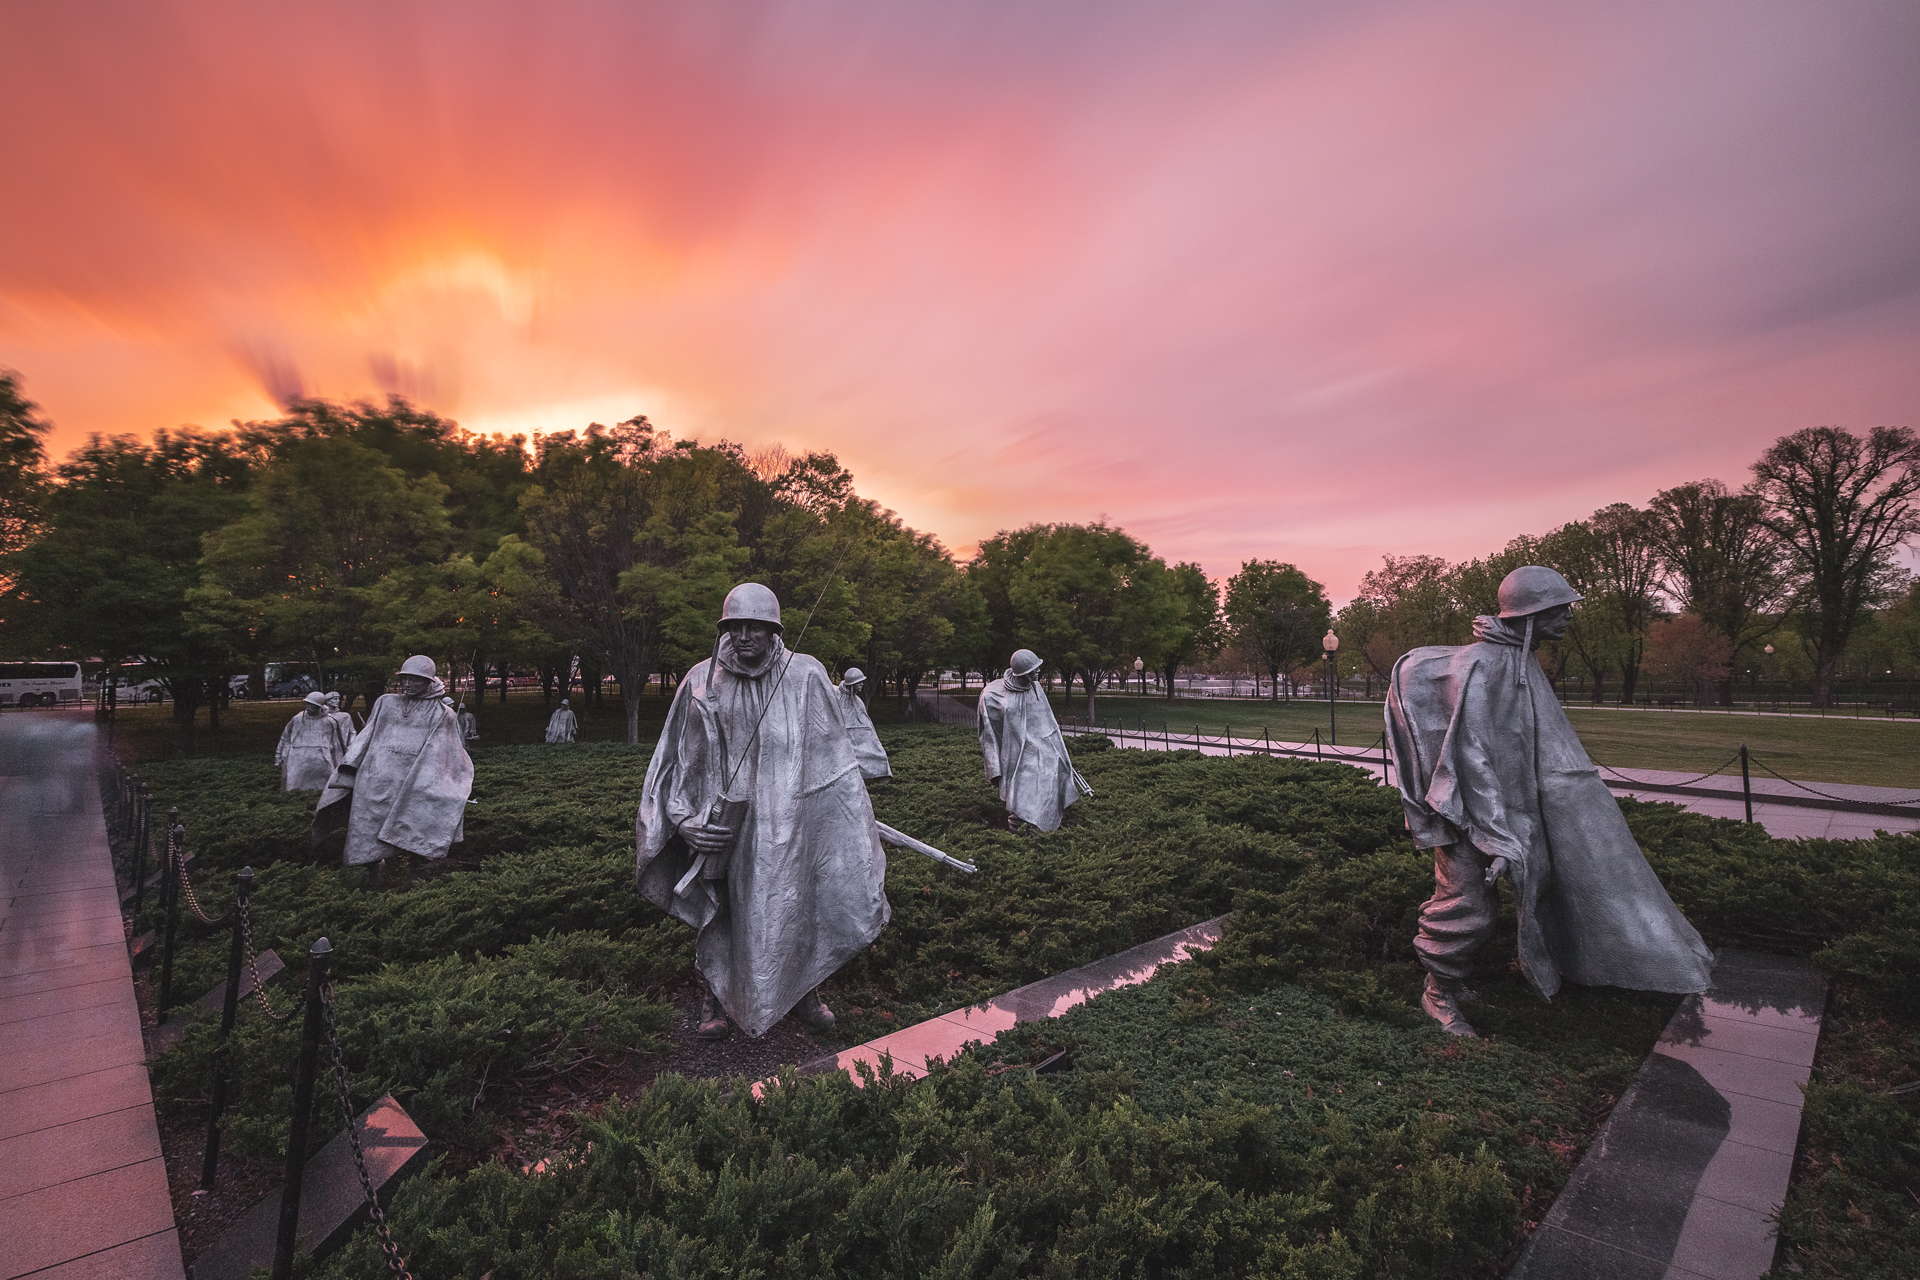 Korean Veterans War Memorial (Image: Zack Lewkowicz)